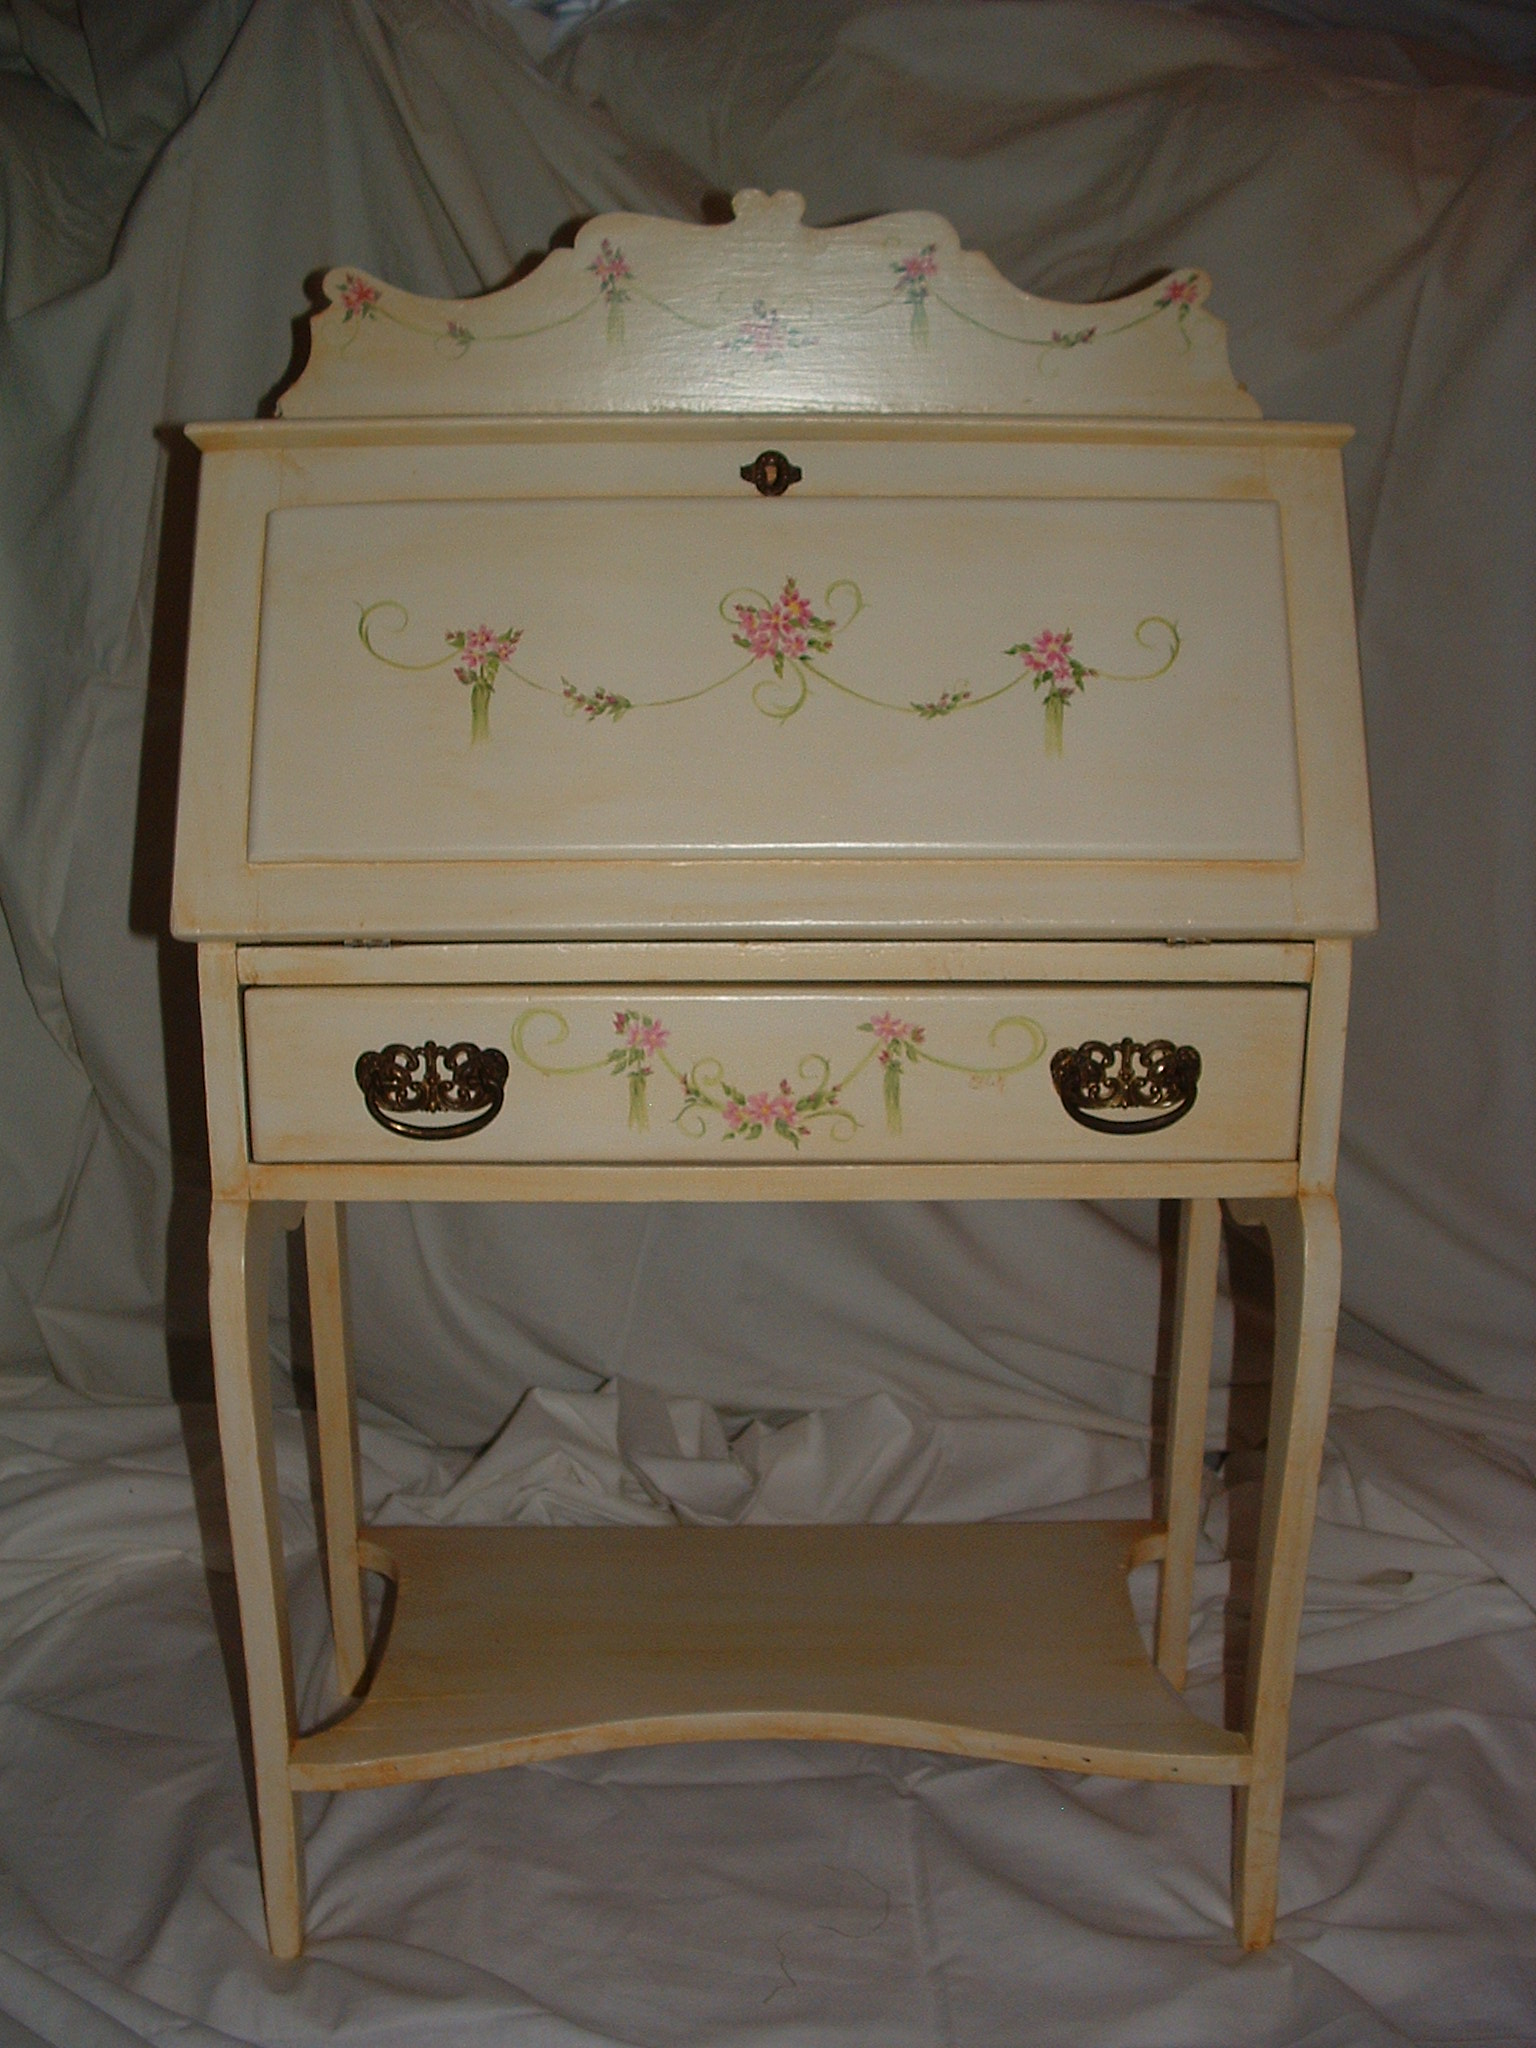 Custom painted furniture miss pam balloons body art Images of painted furniture